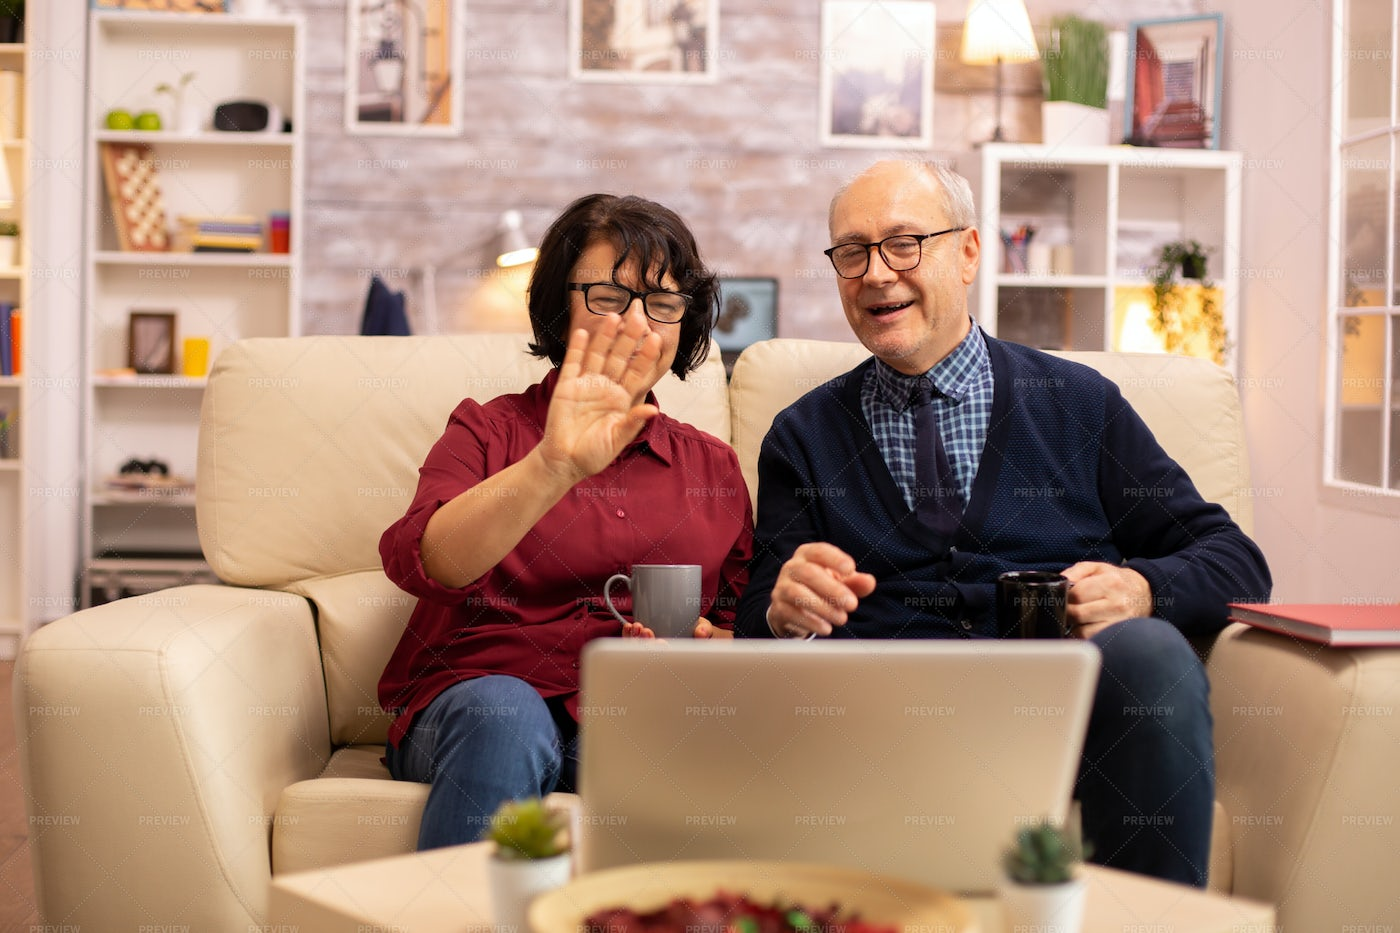 Grandparents On Video Call: Stock Photos